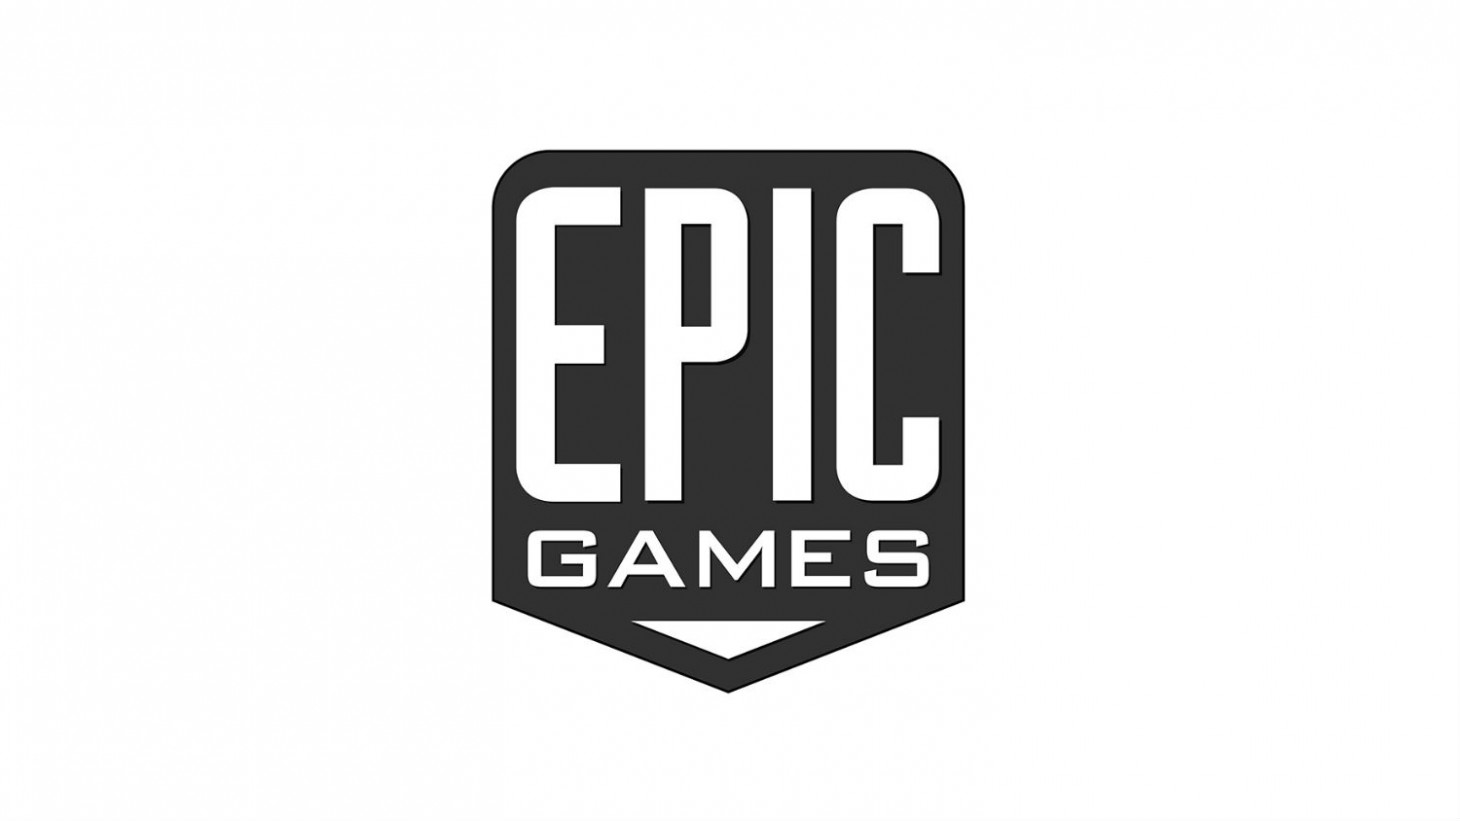 Epic Games - Wikipedia  |Epic Games